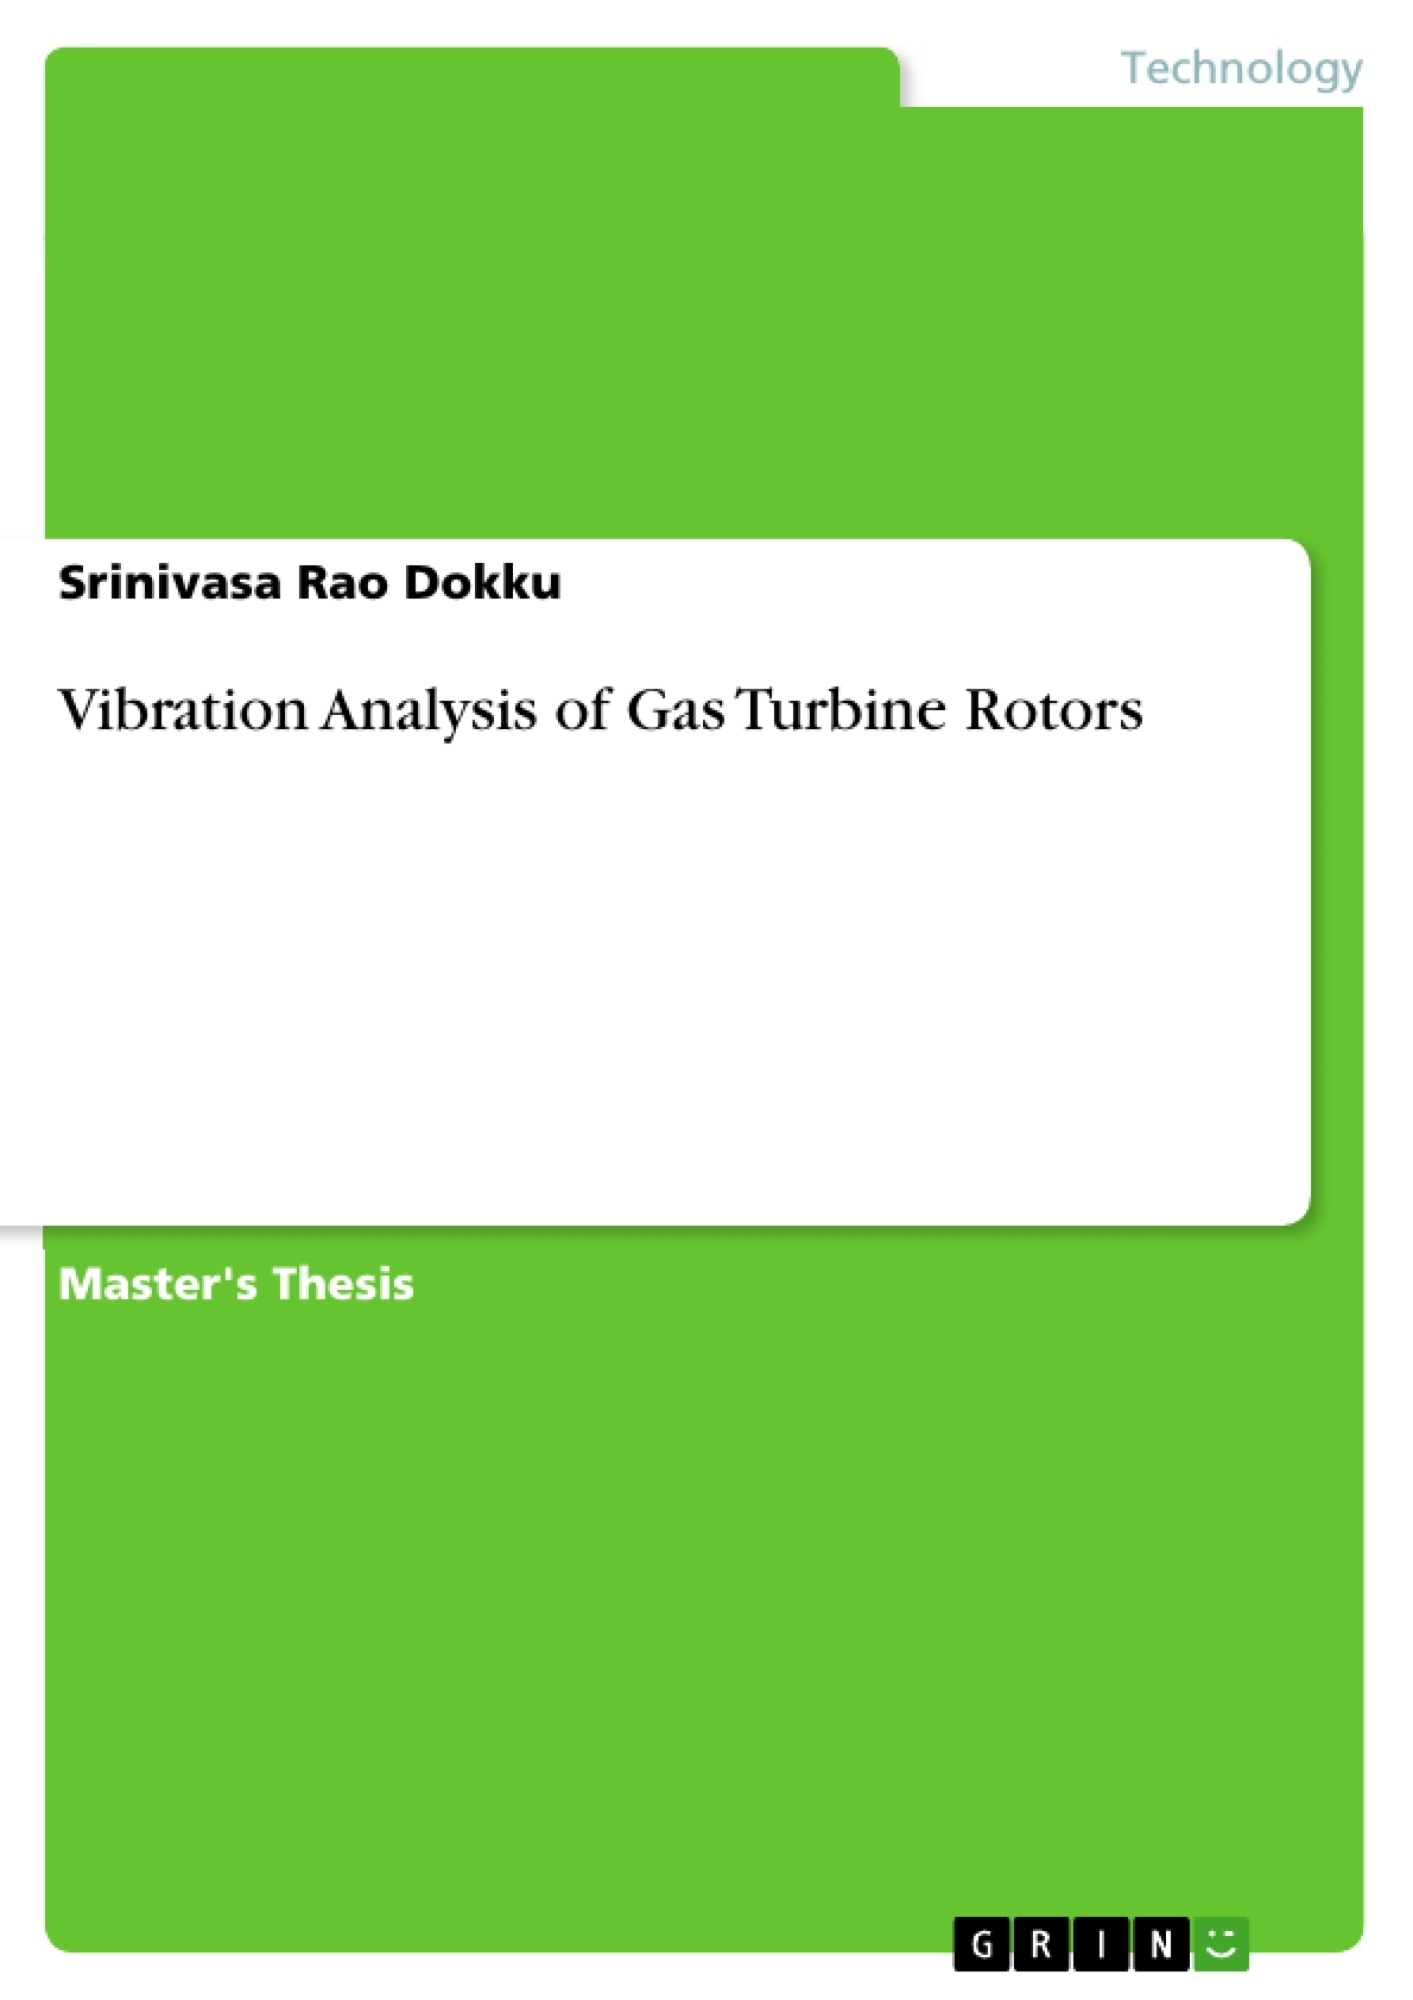 Title: Vibration Analysis of Gas Turbine Rotors